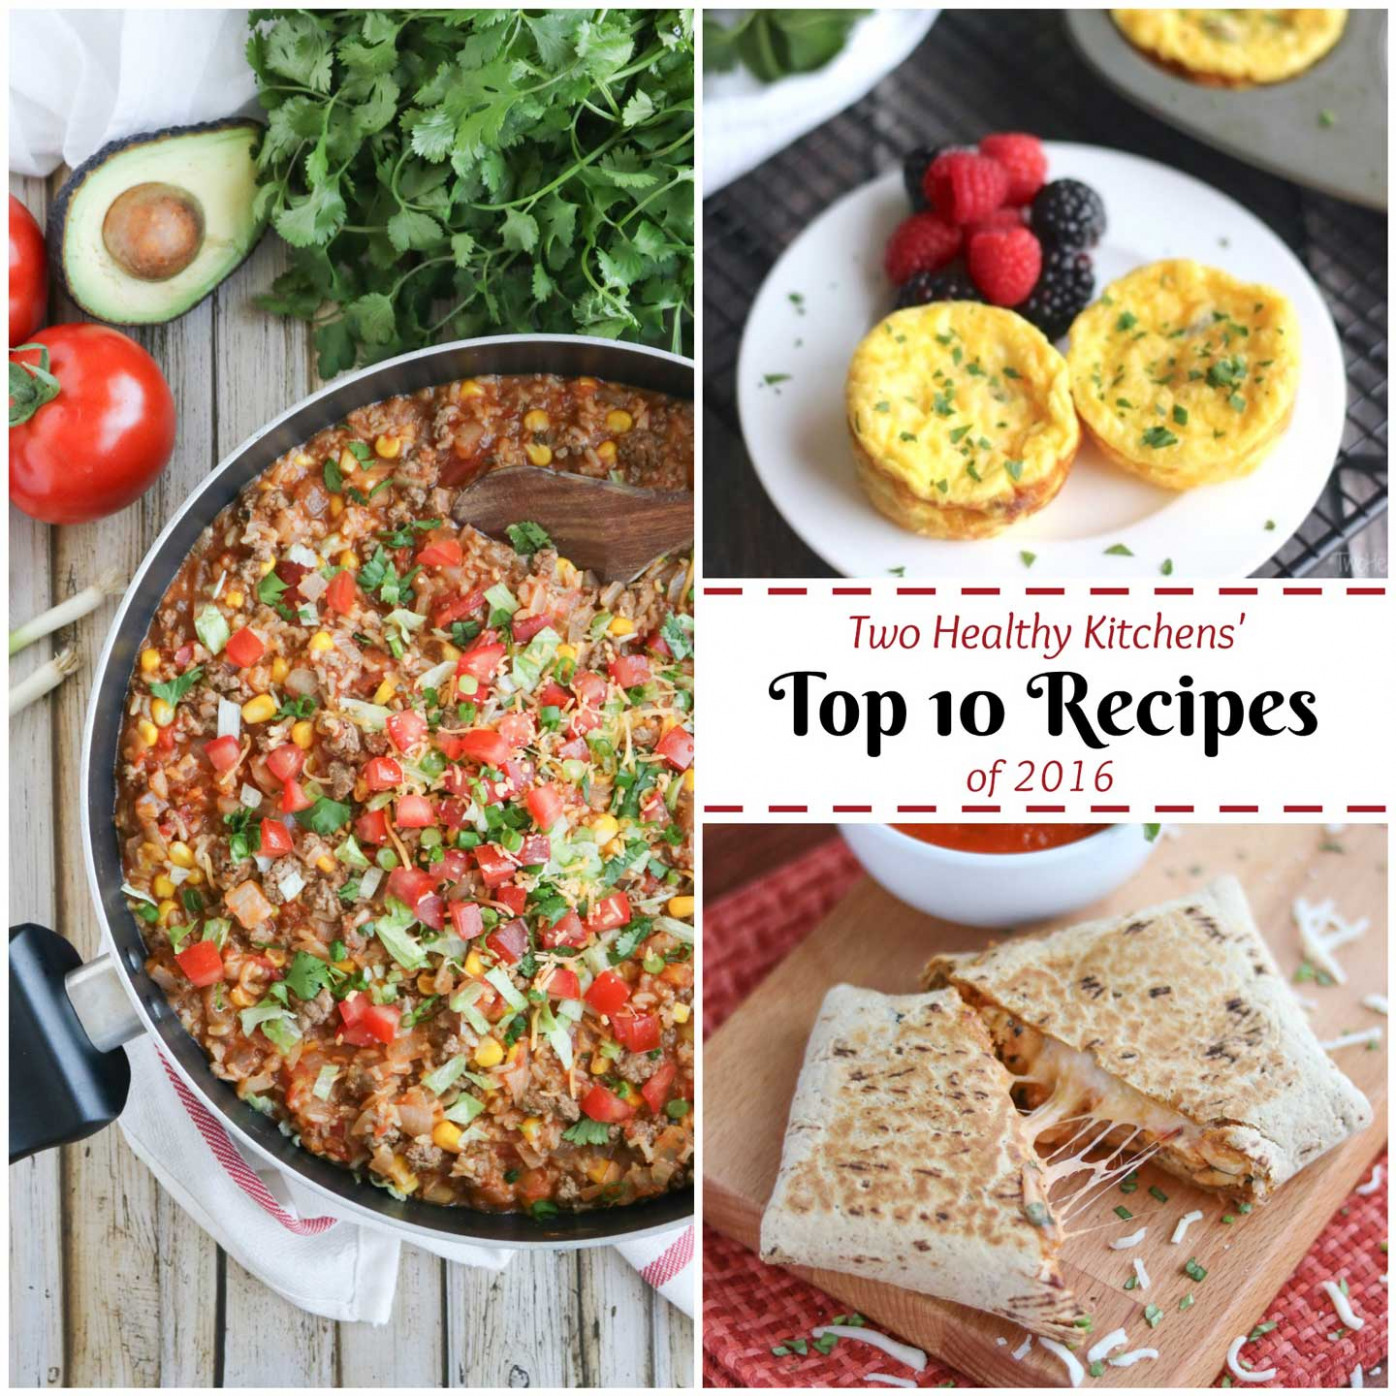 Our Most Popular Easy, Healthy Recipes of 2016 - Two ...